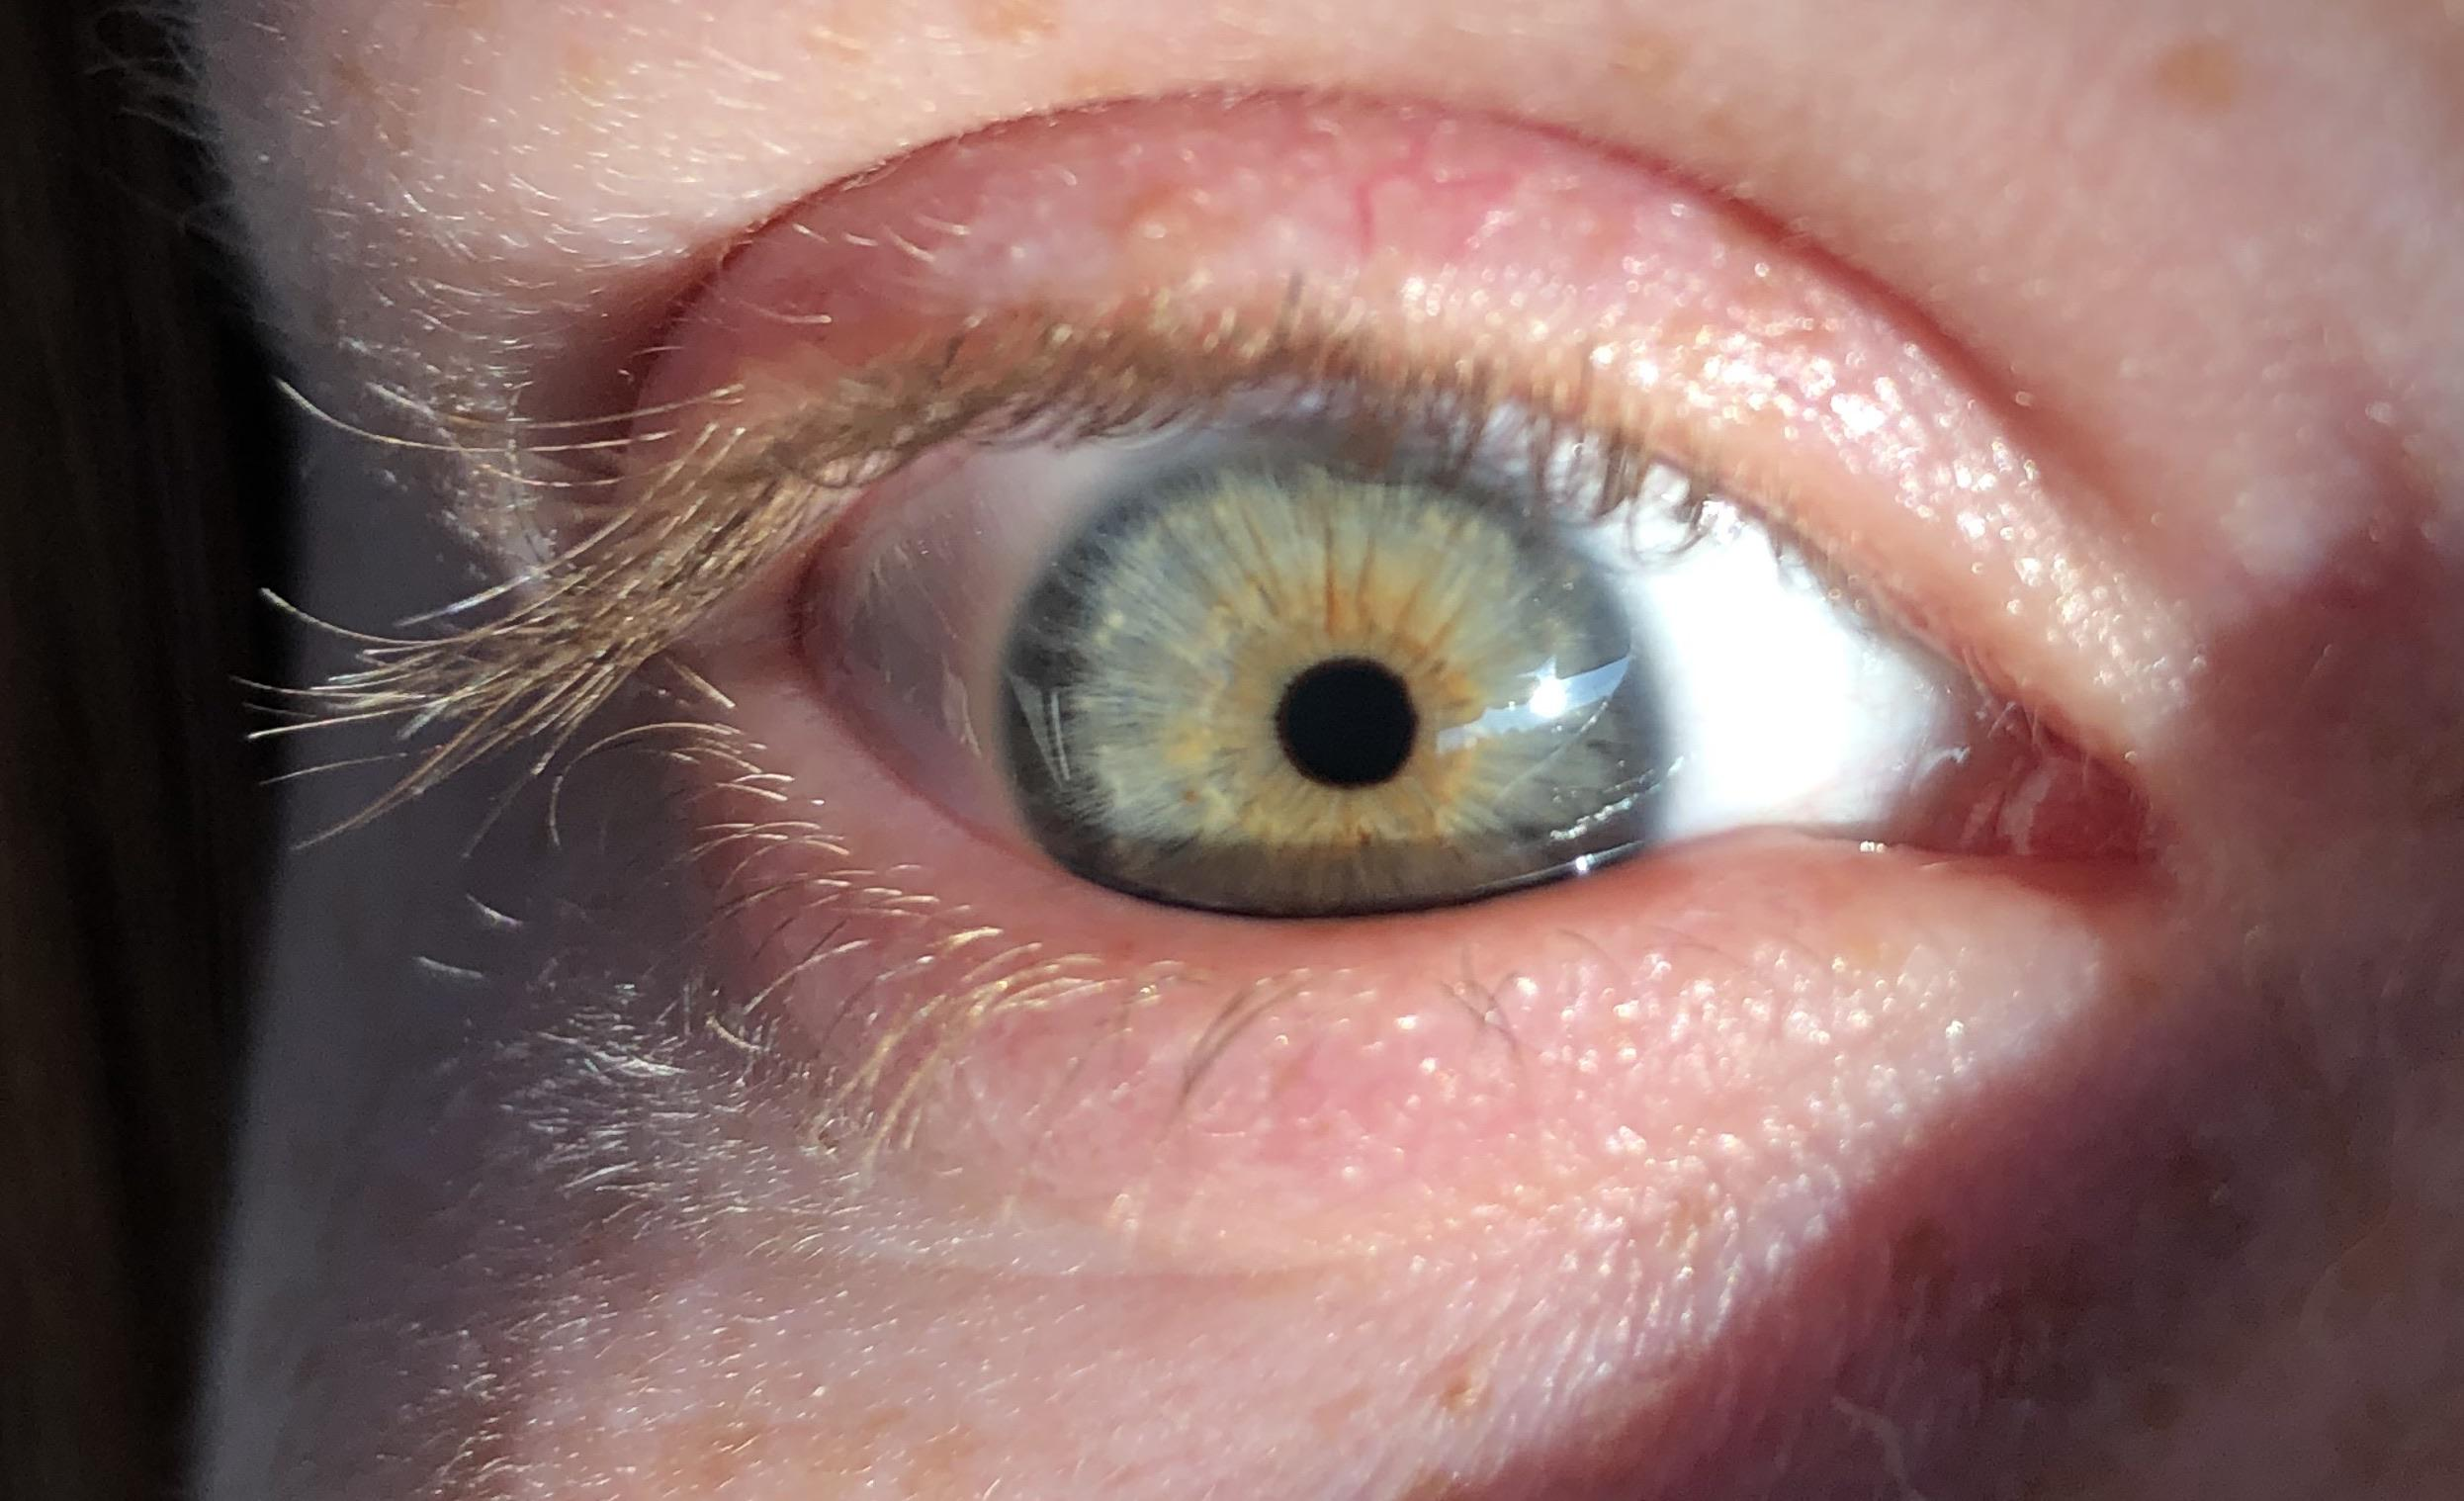 Can Anyone Find A Way To Describe My Eye Or Eye Color